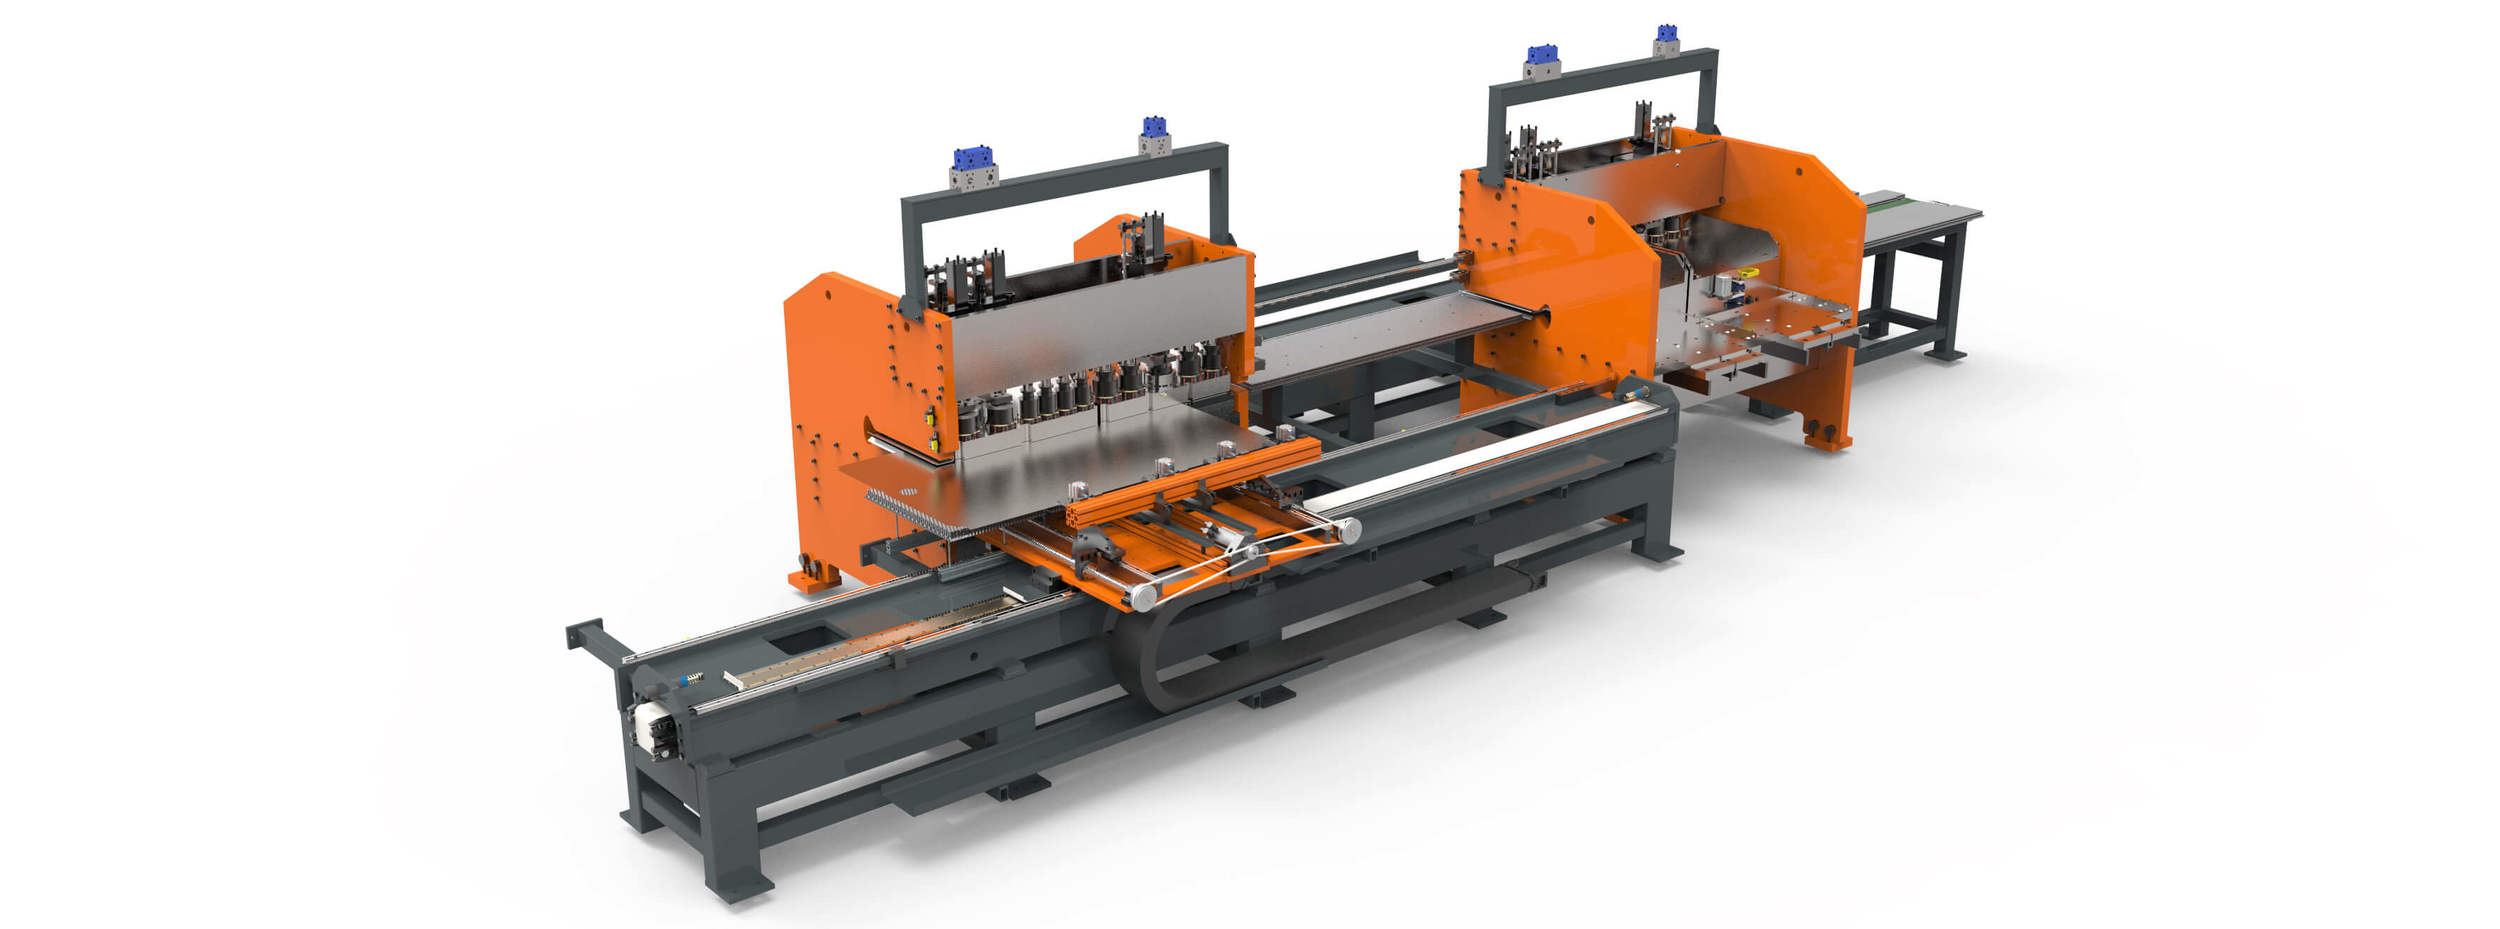 complete punching bending and welding production line for producing lockers and cabinets